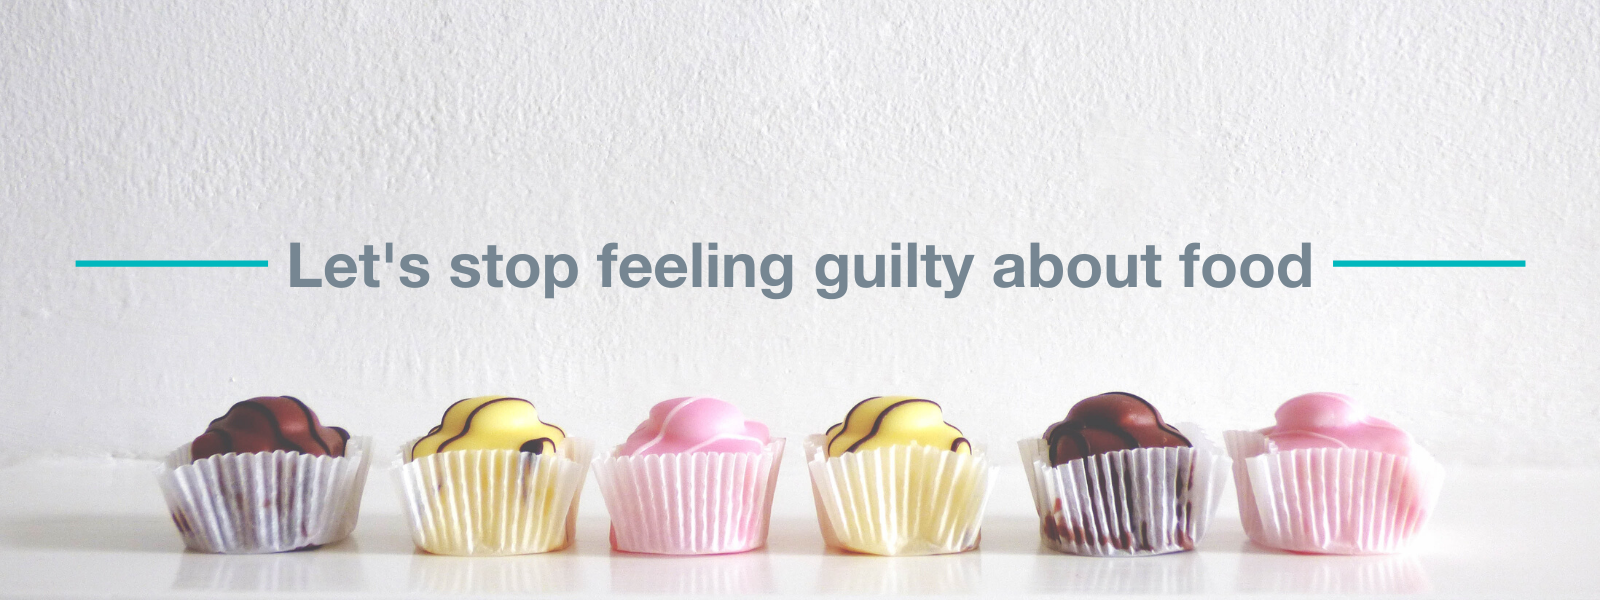 Let's stop feeling guilty about food